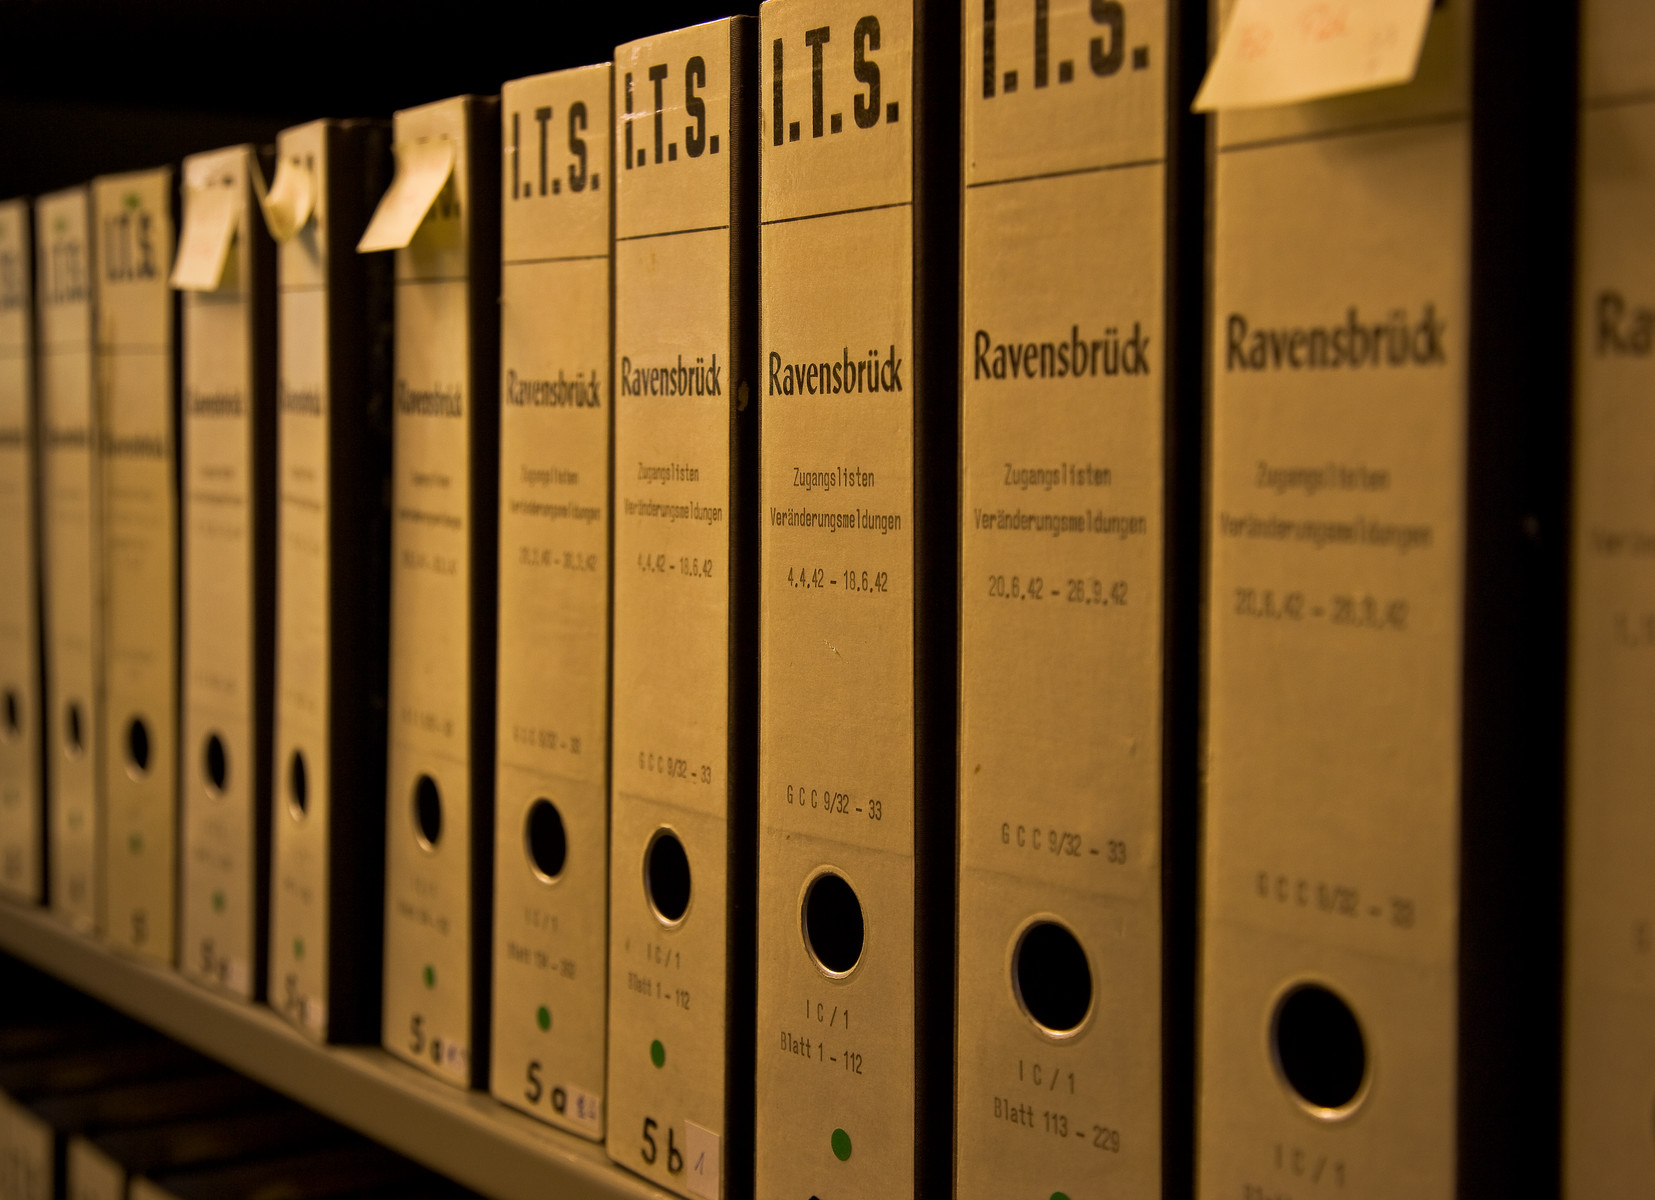 One row of International Tracing Service boxed files of Ravensbrueck concentration camp.